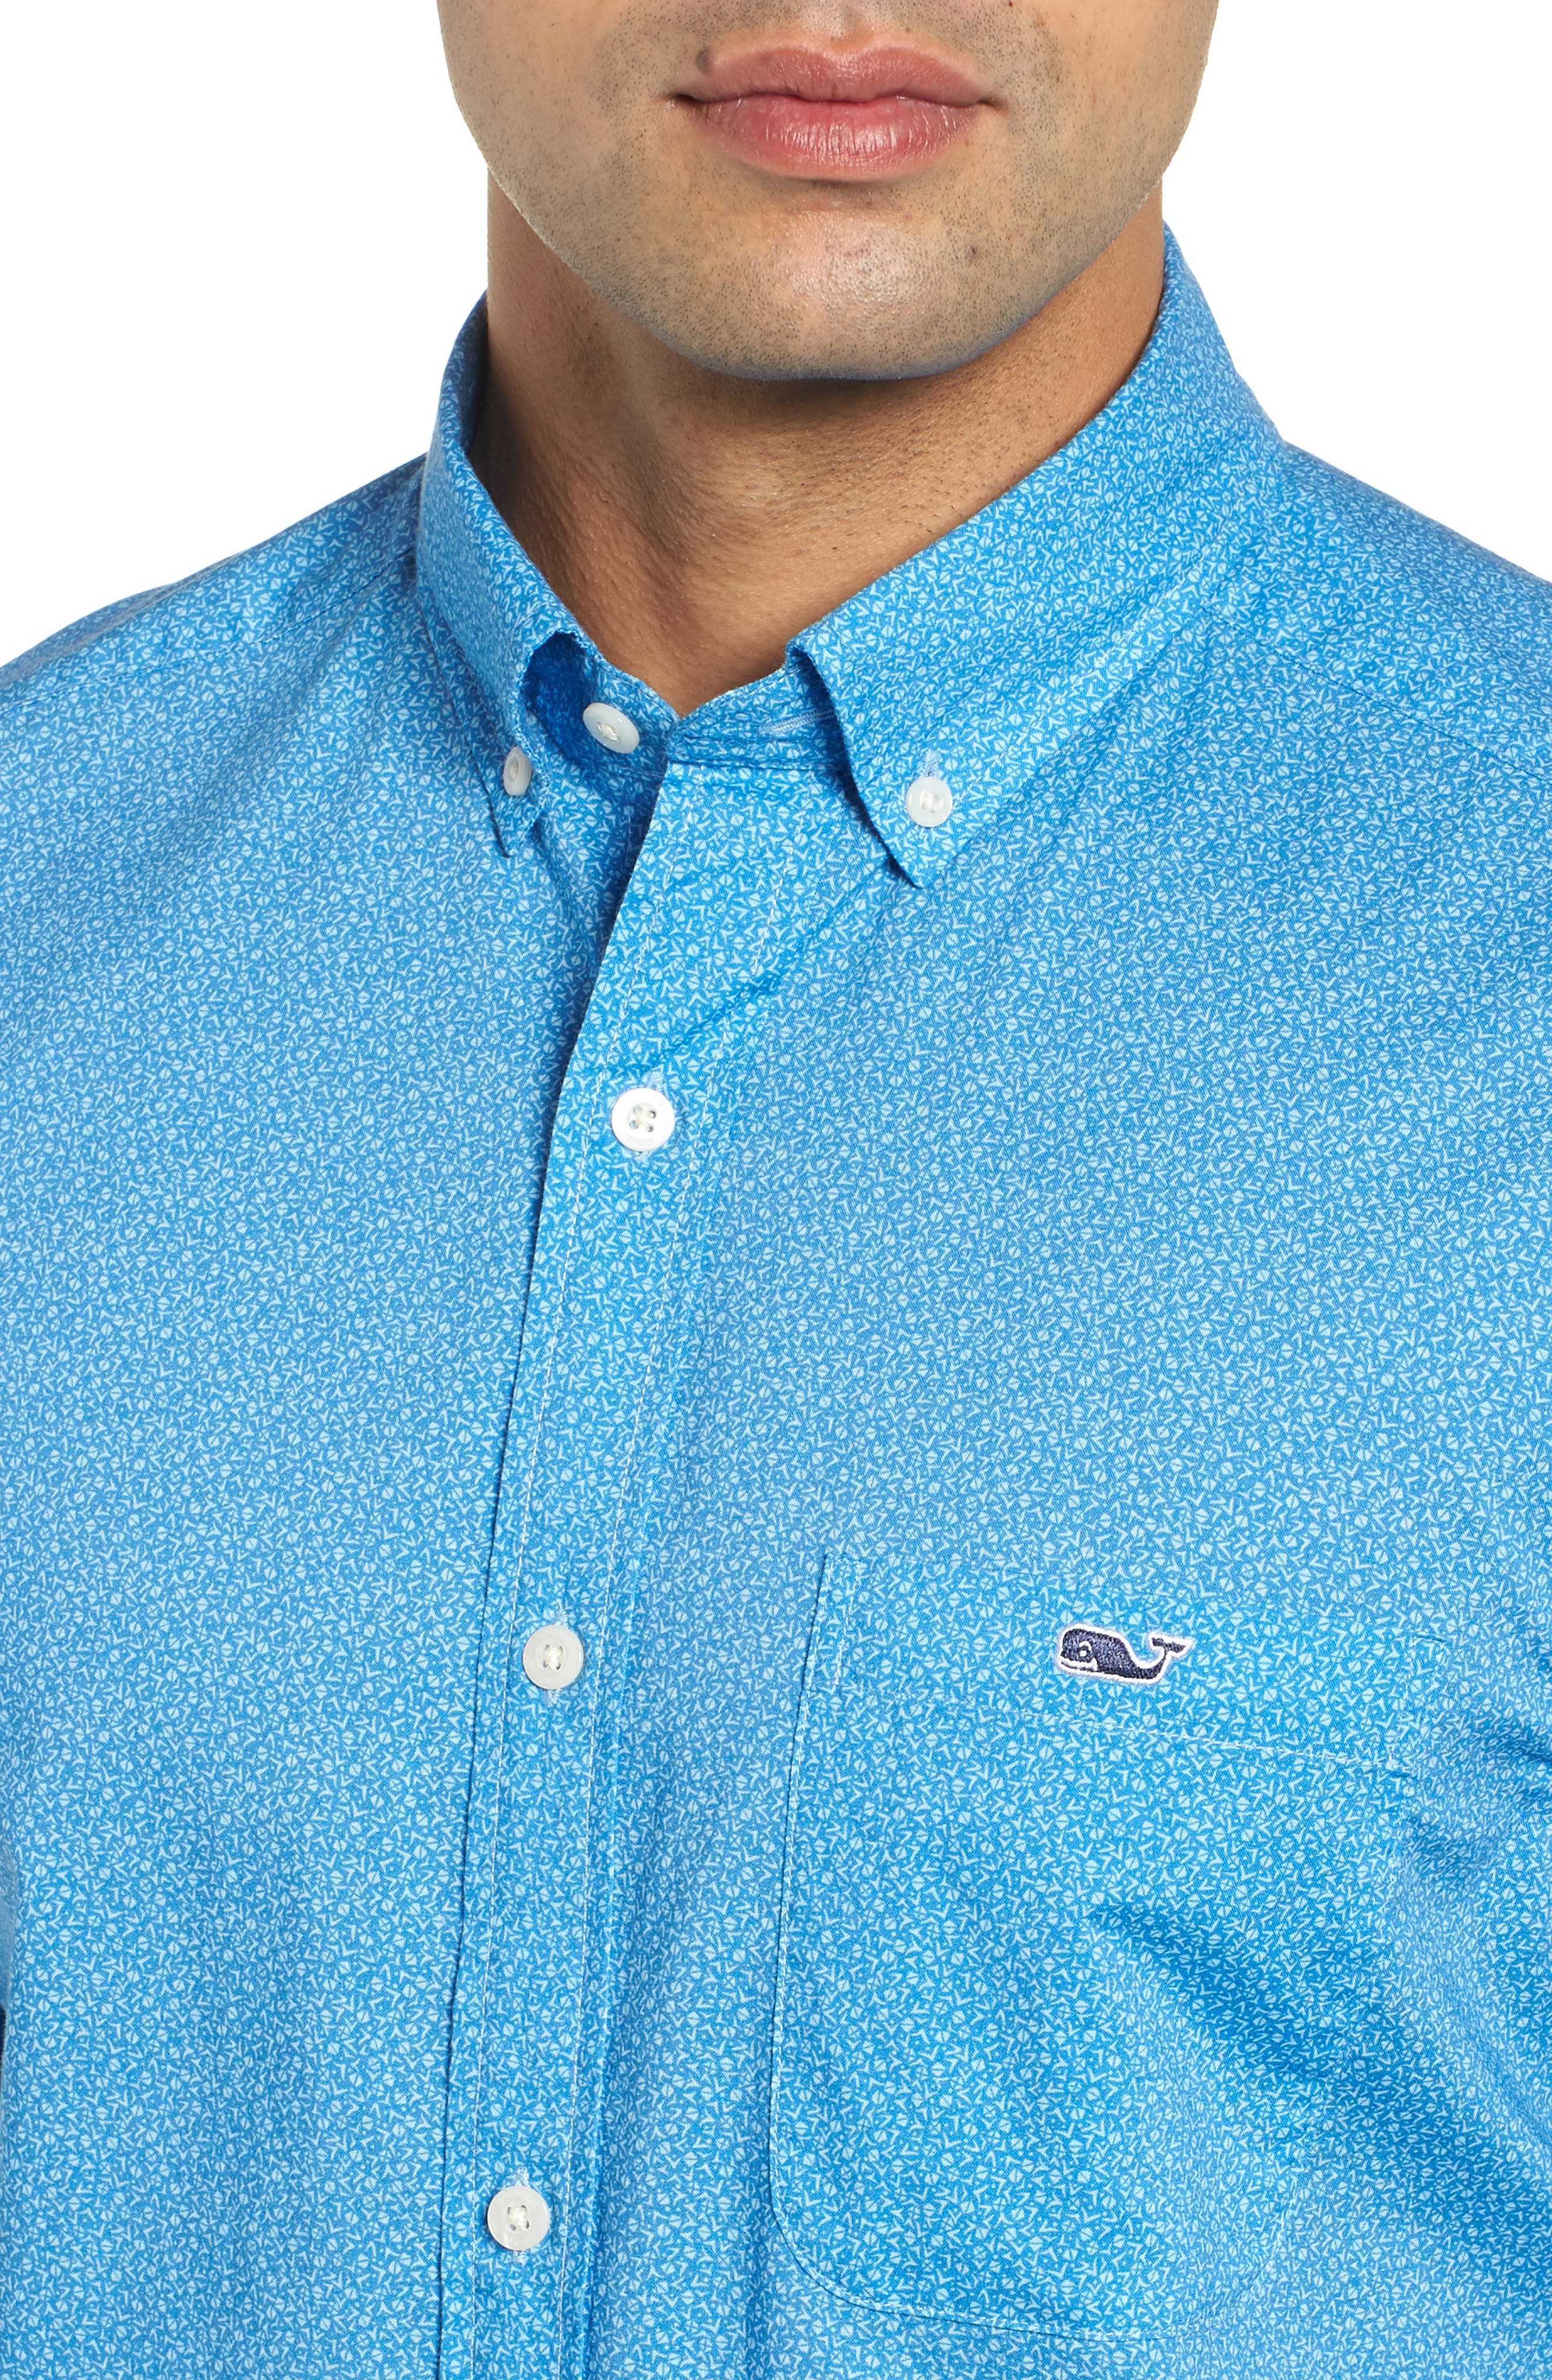 Seagulls Tucker Slim Fit Sport Shirt,                             Alternate thumbnail 4, color,                             400